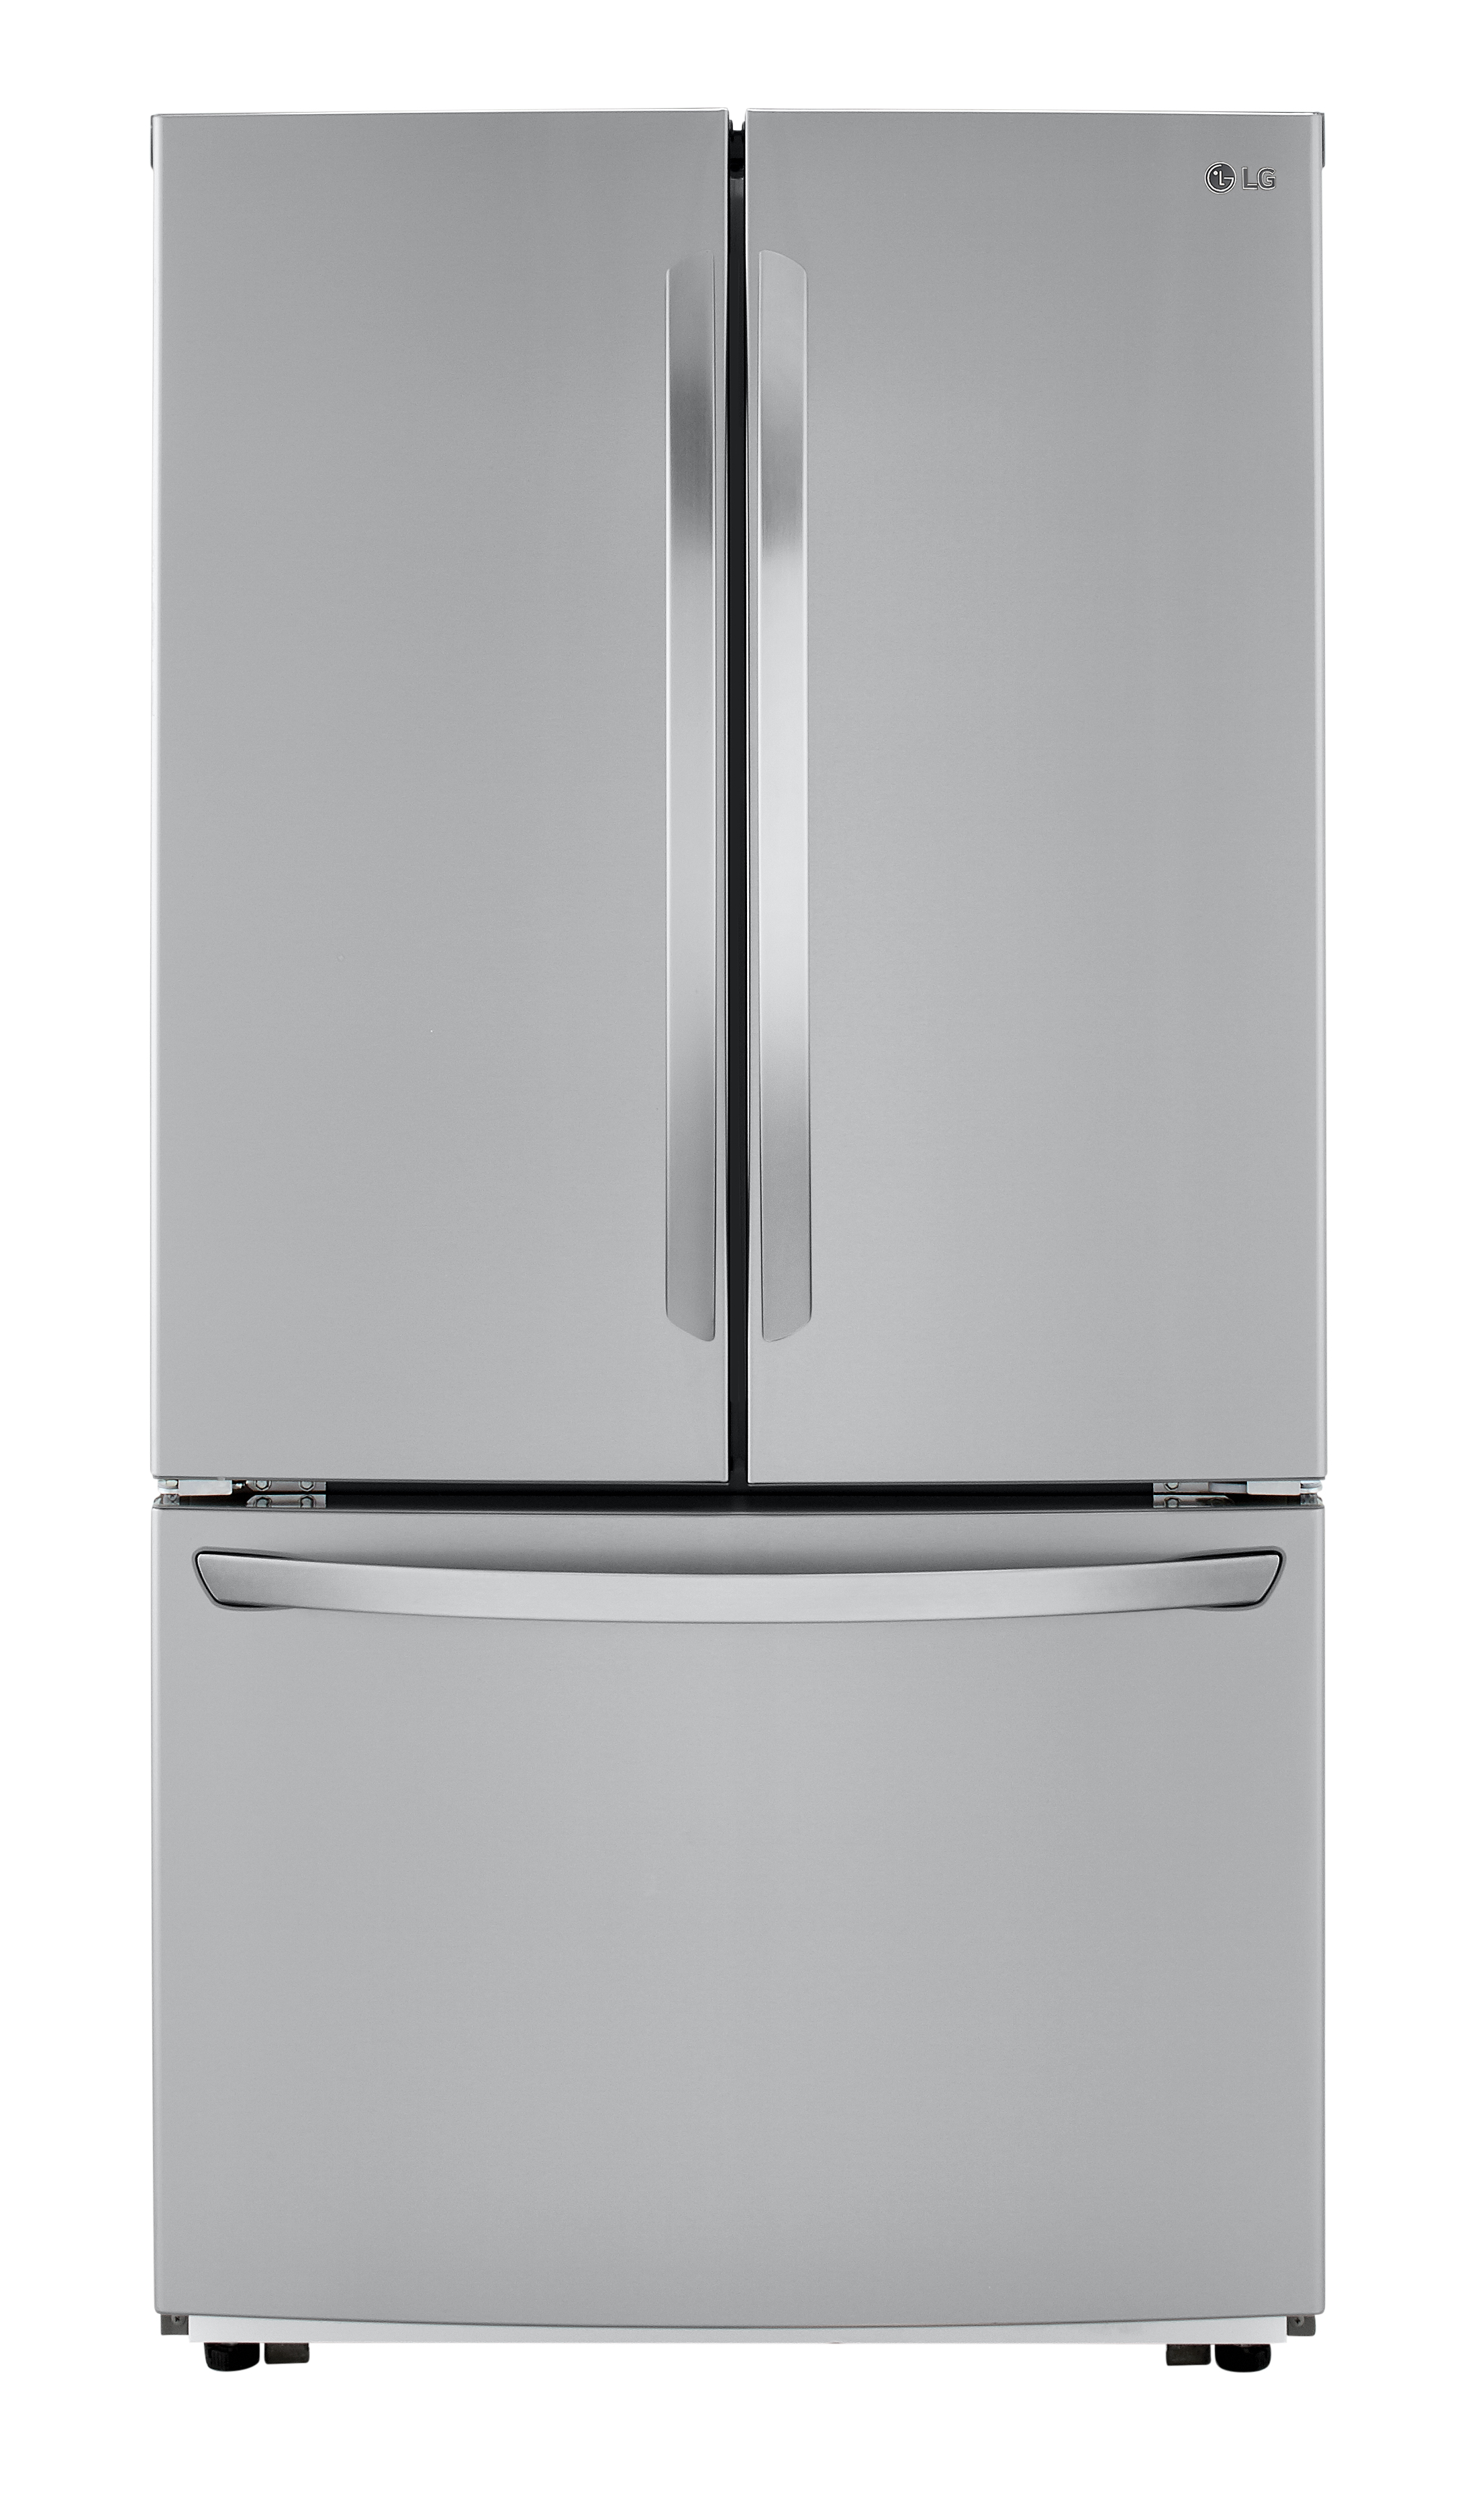 LG Refrigerator 36 StainlessSteel LFCC22426S in Stainless Steel color showcased by Corbeil Electro Store